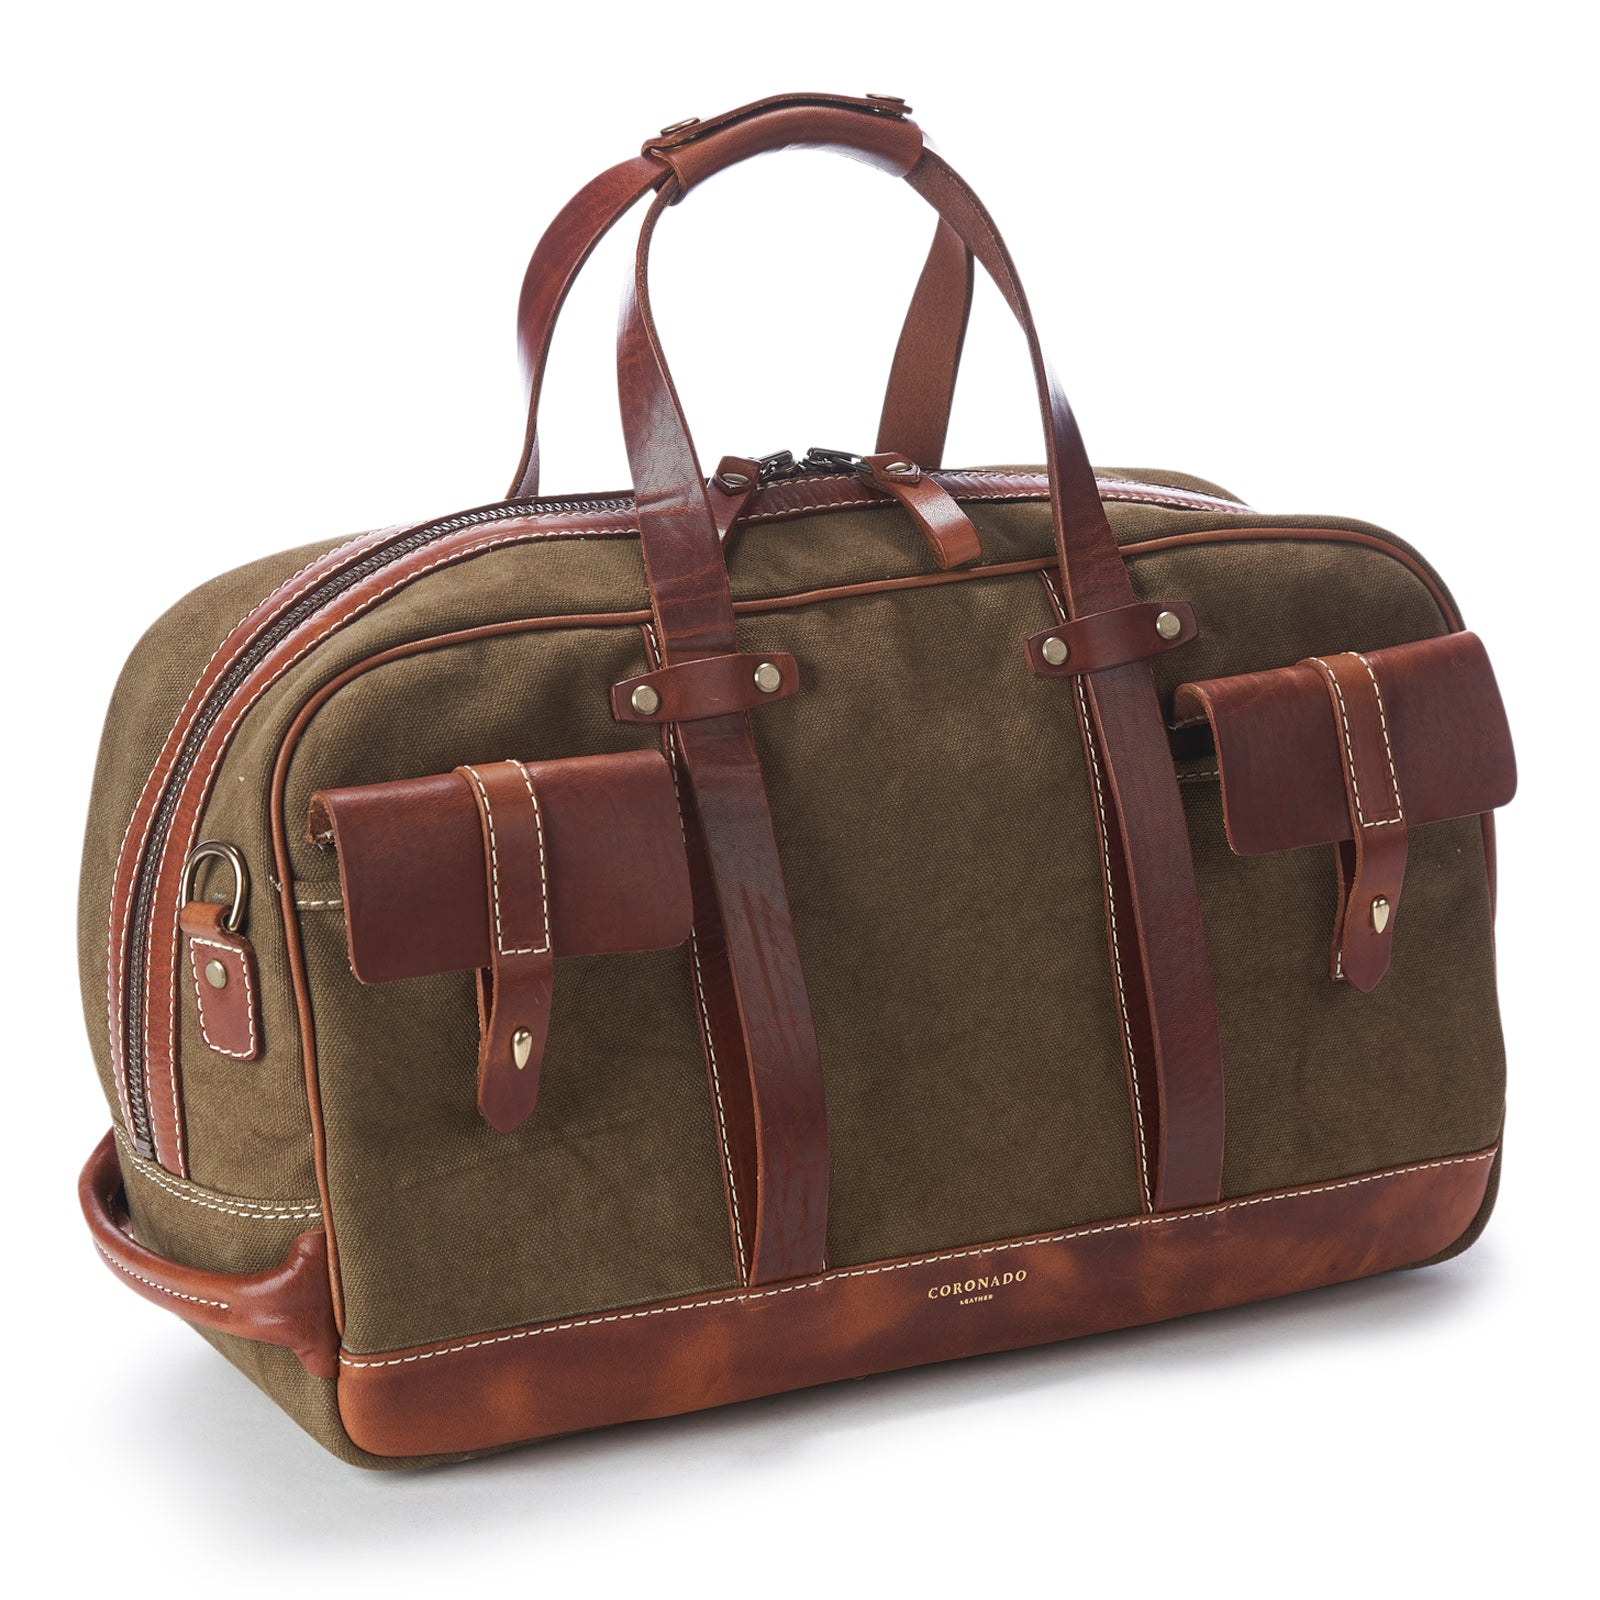 EDINBURGH DUFFEL No. 730